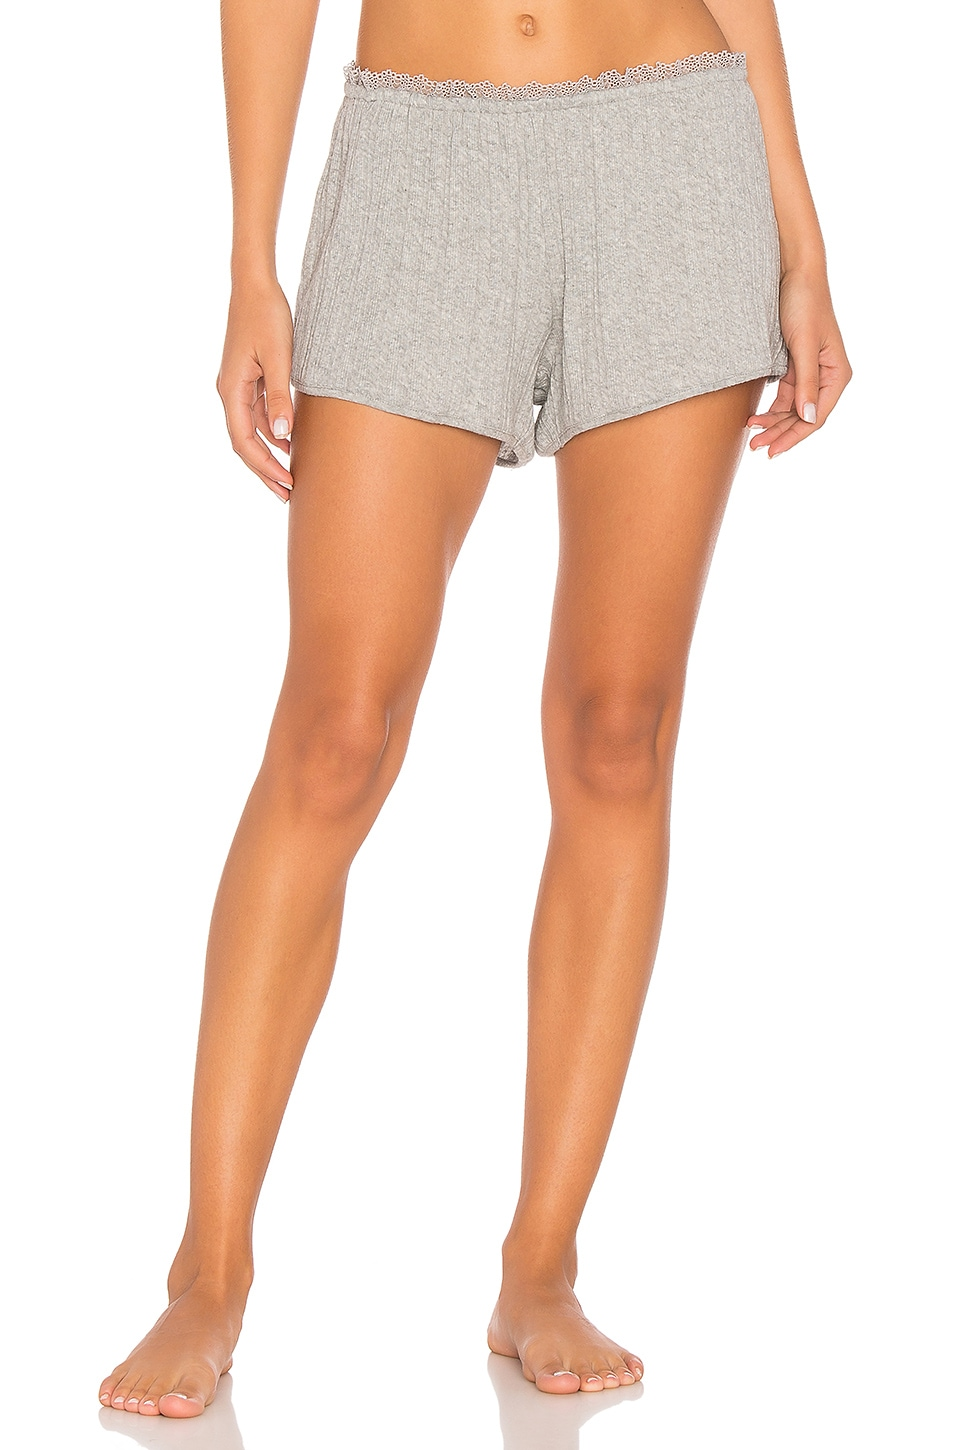 Skin Sleep Lace Trimmed Short in Heather Grey